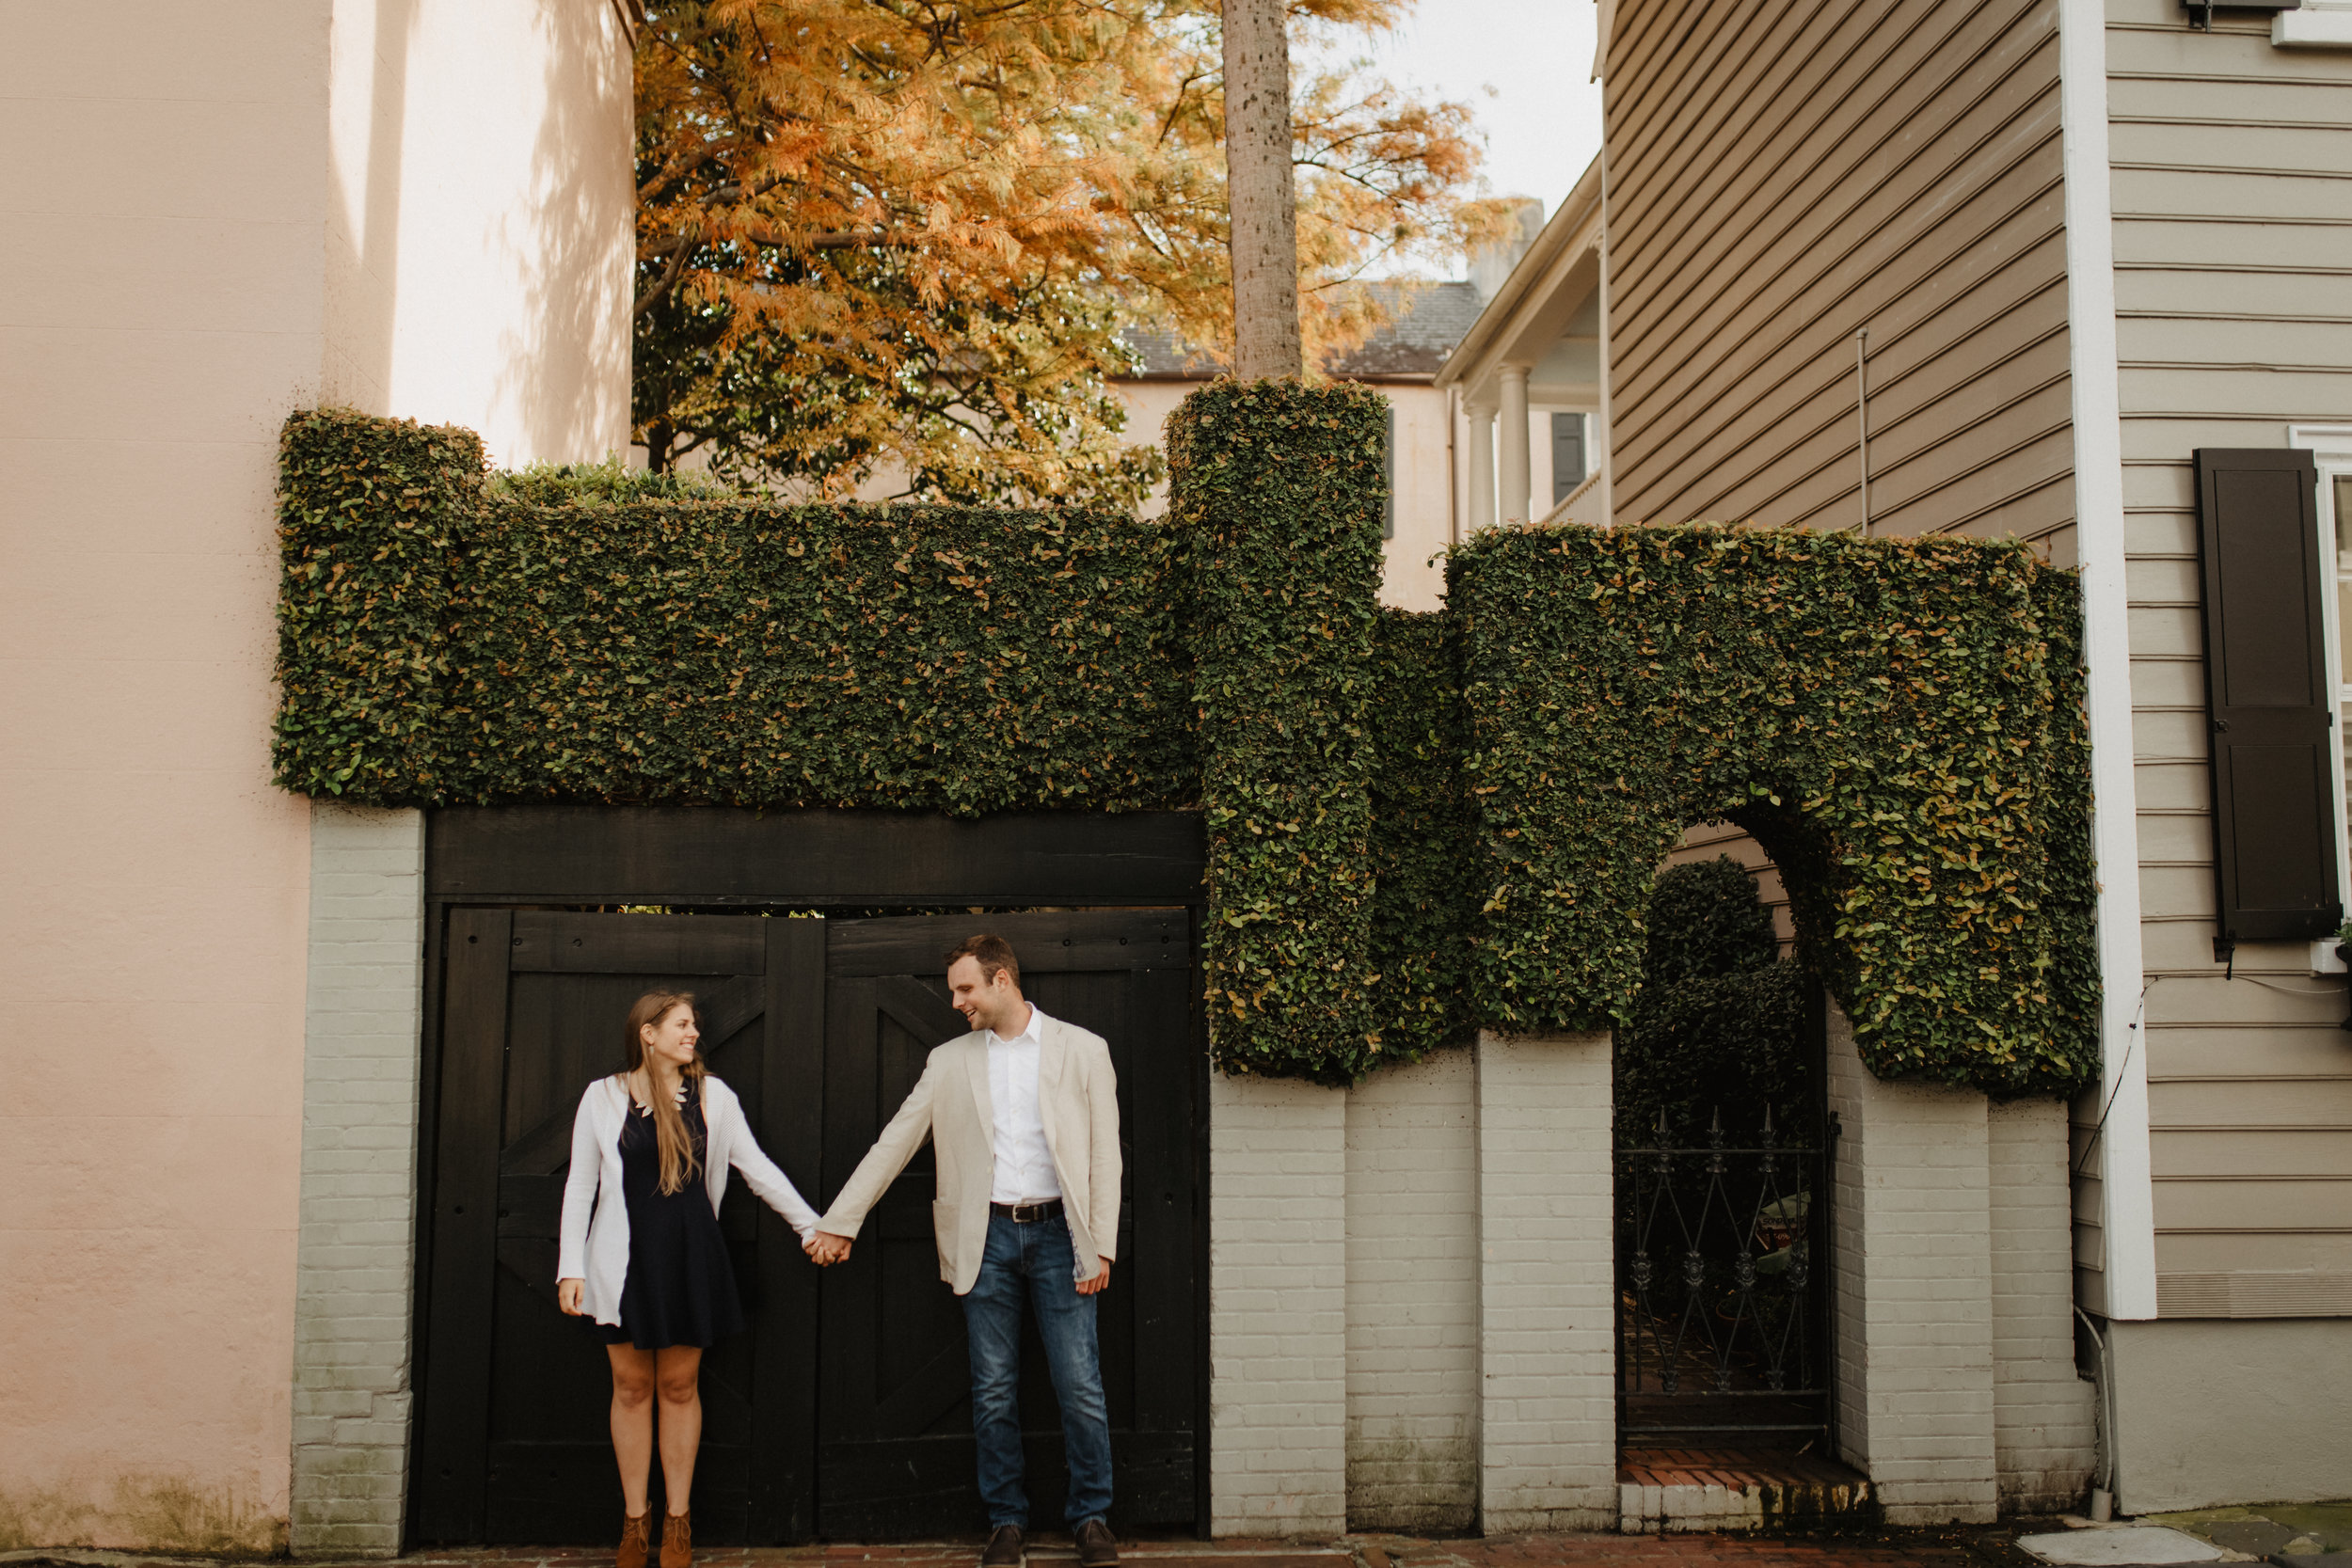 ShadowShinePictures-RachelDavid-Eudy-Engagement-Photography-266.jpg